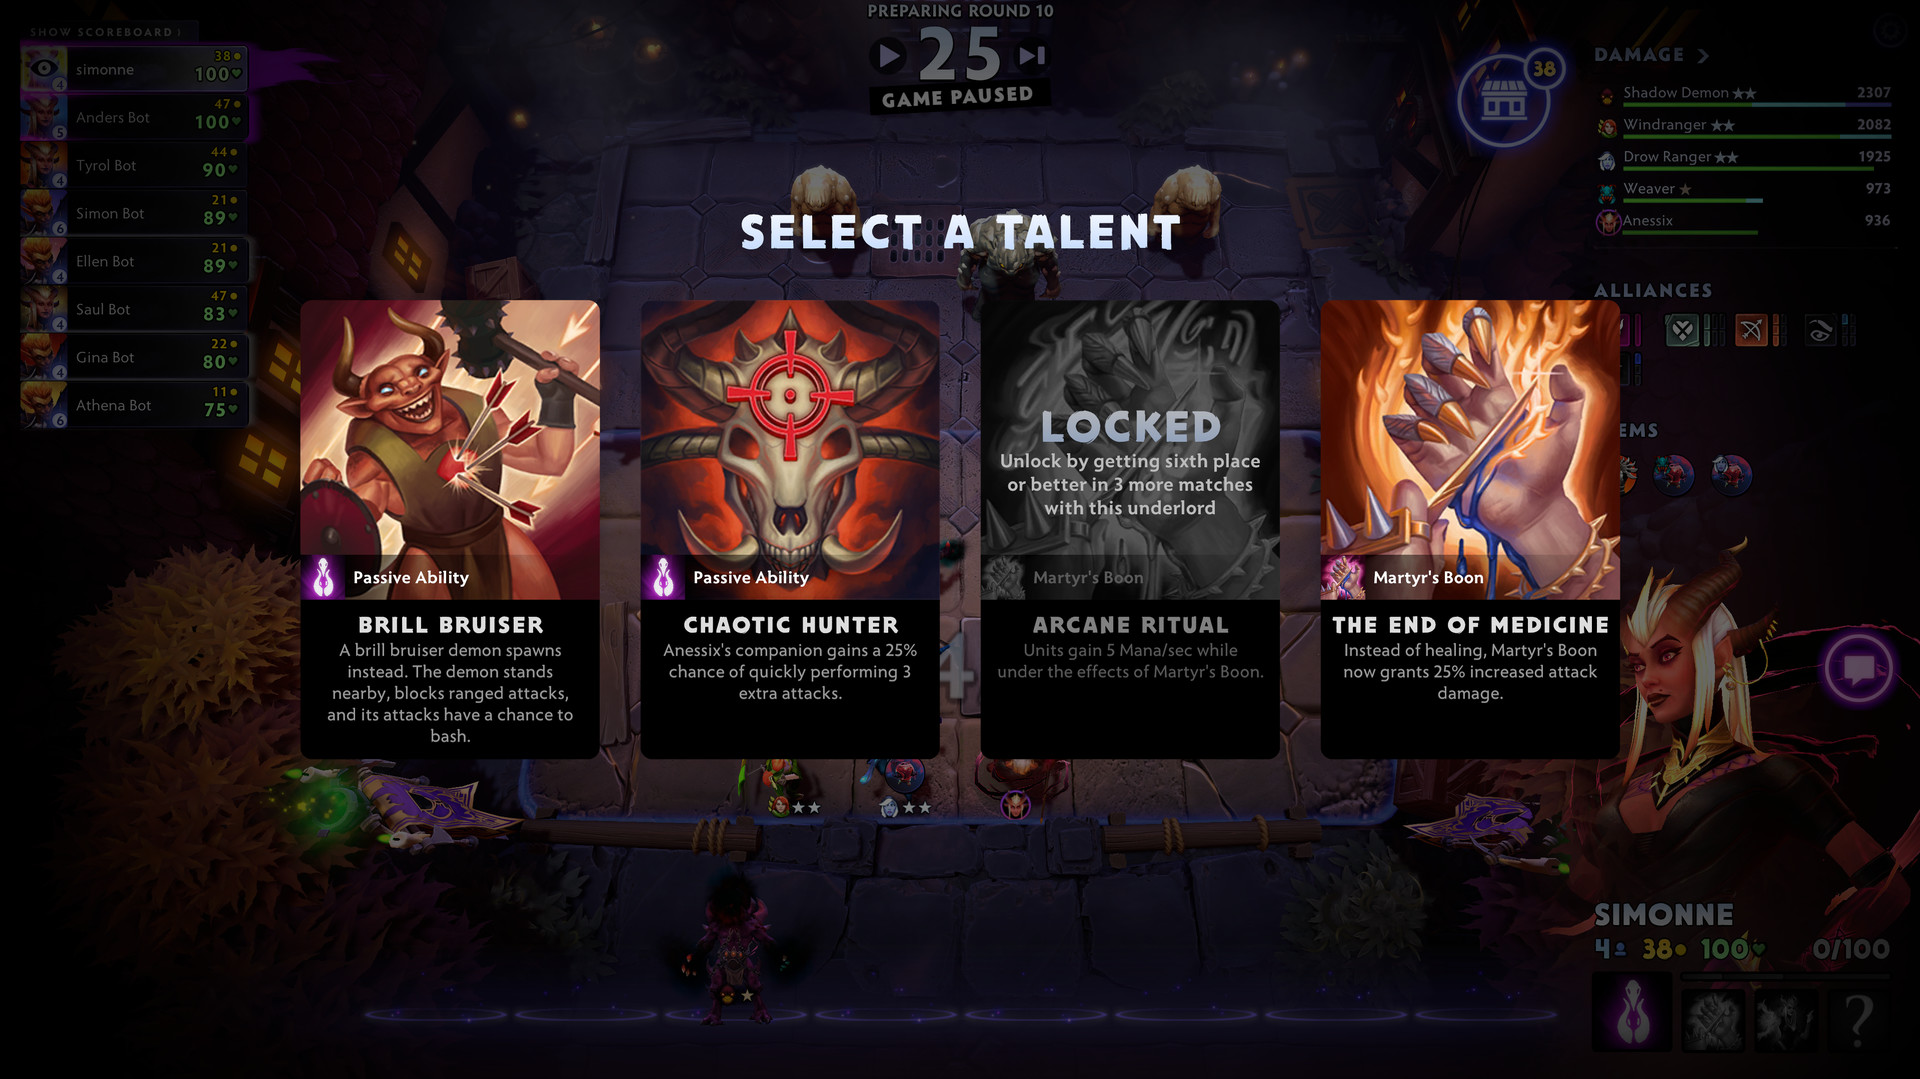 Cinese segno zodiacale matchmaking